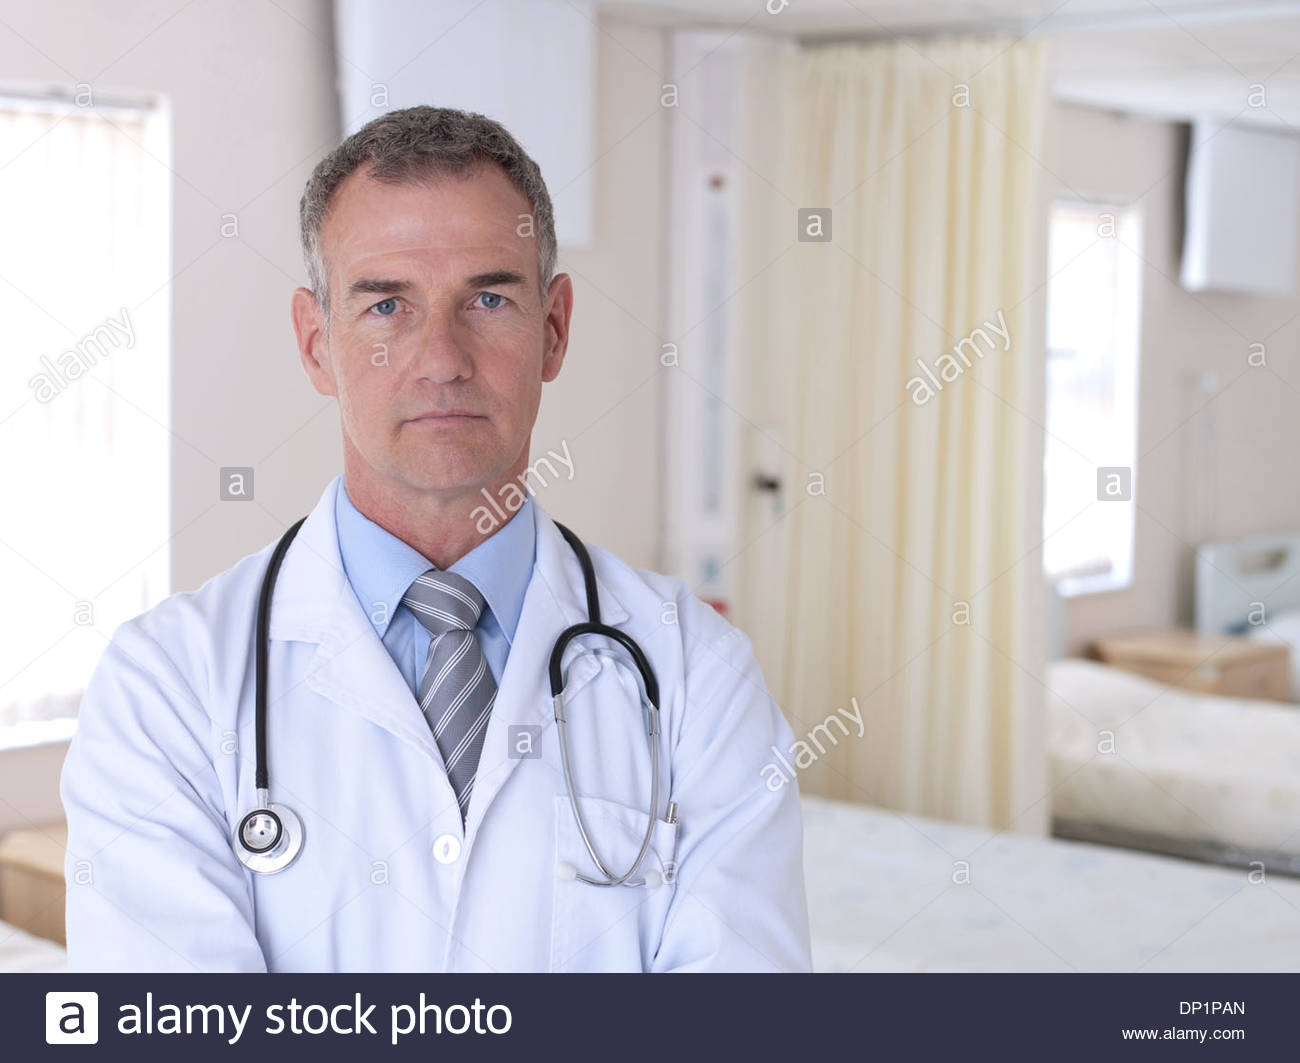 Portrait of doctor in hospital - Stock Image